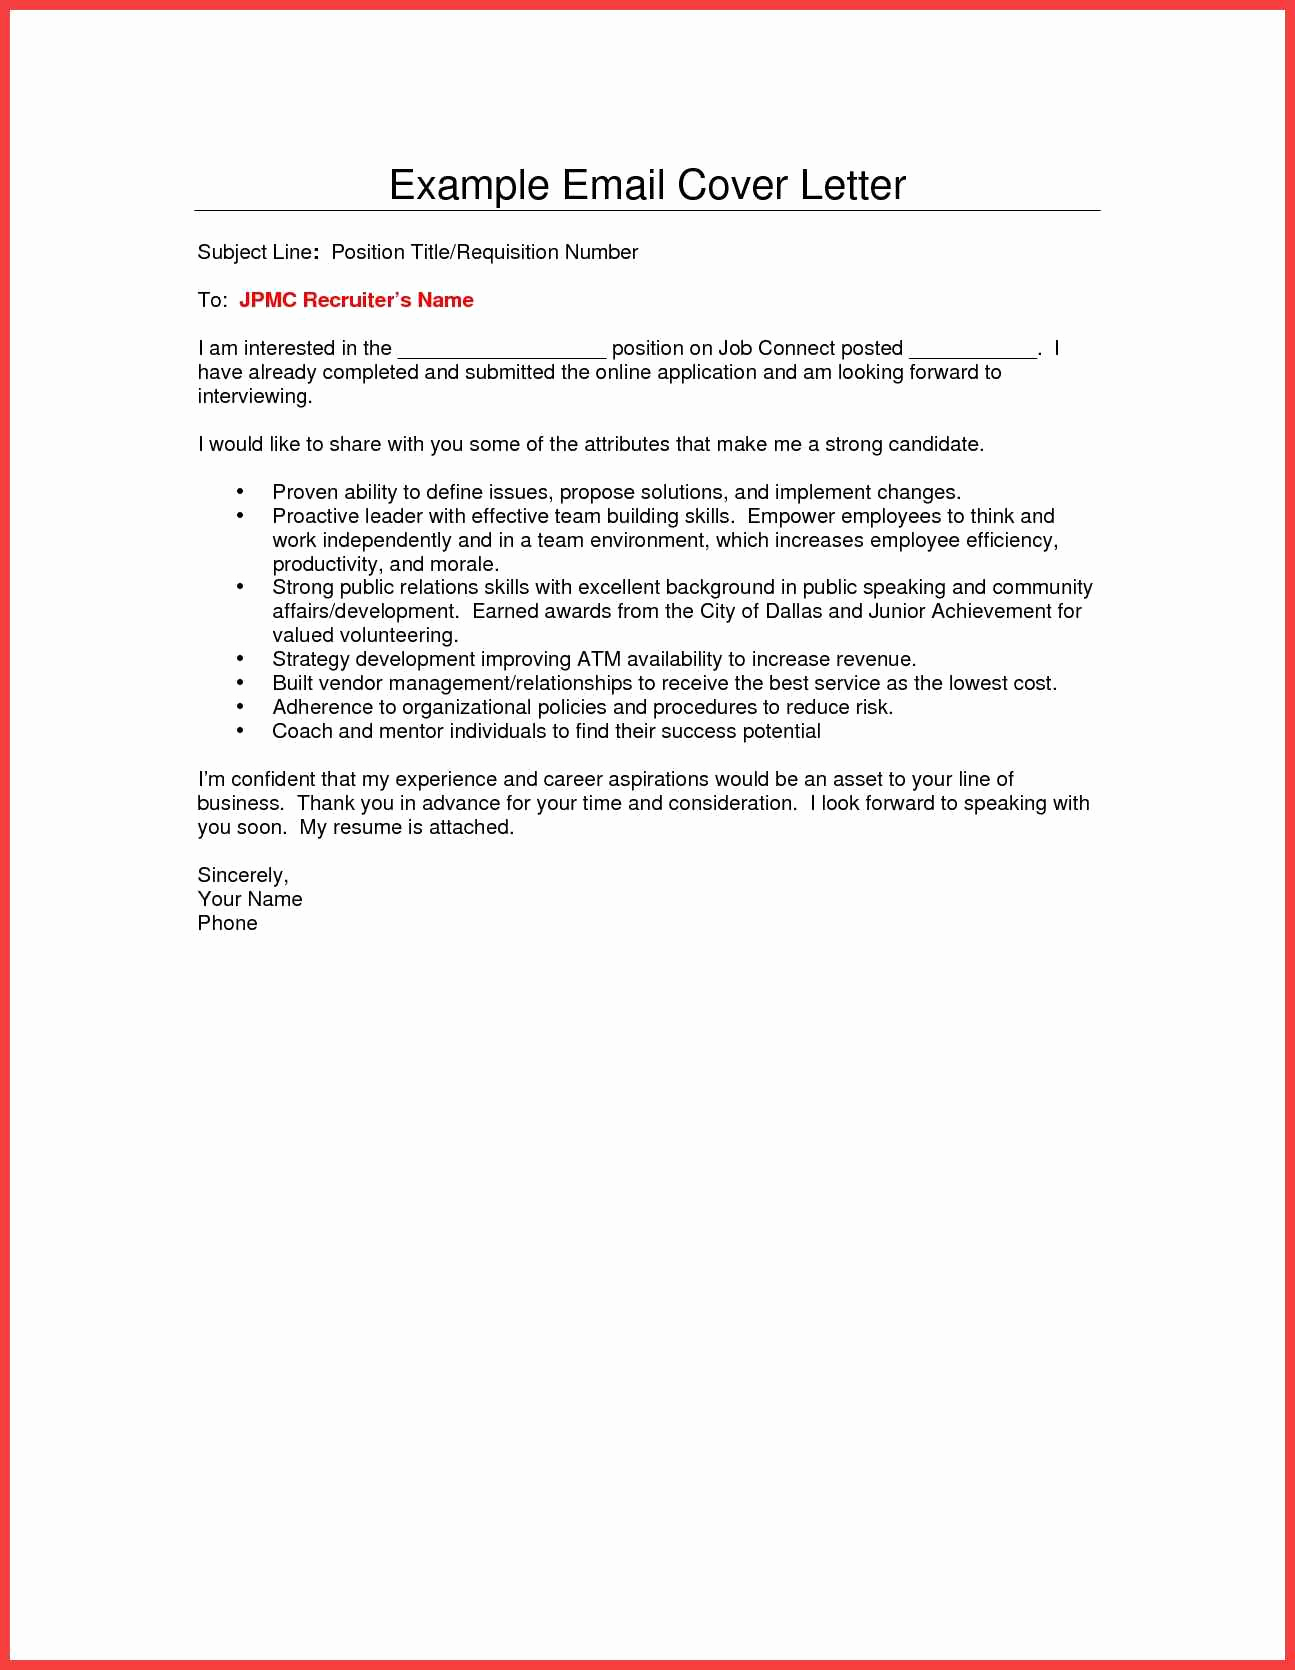 Email Cover Letter Example Beautiful Email Cover Letter Template